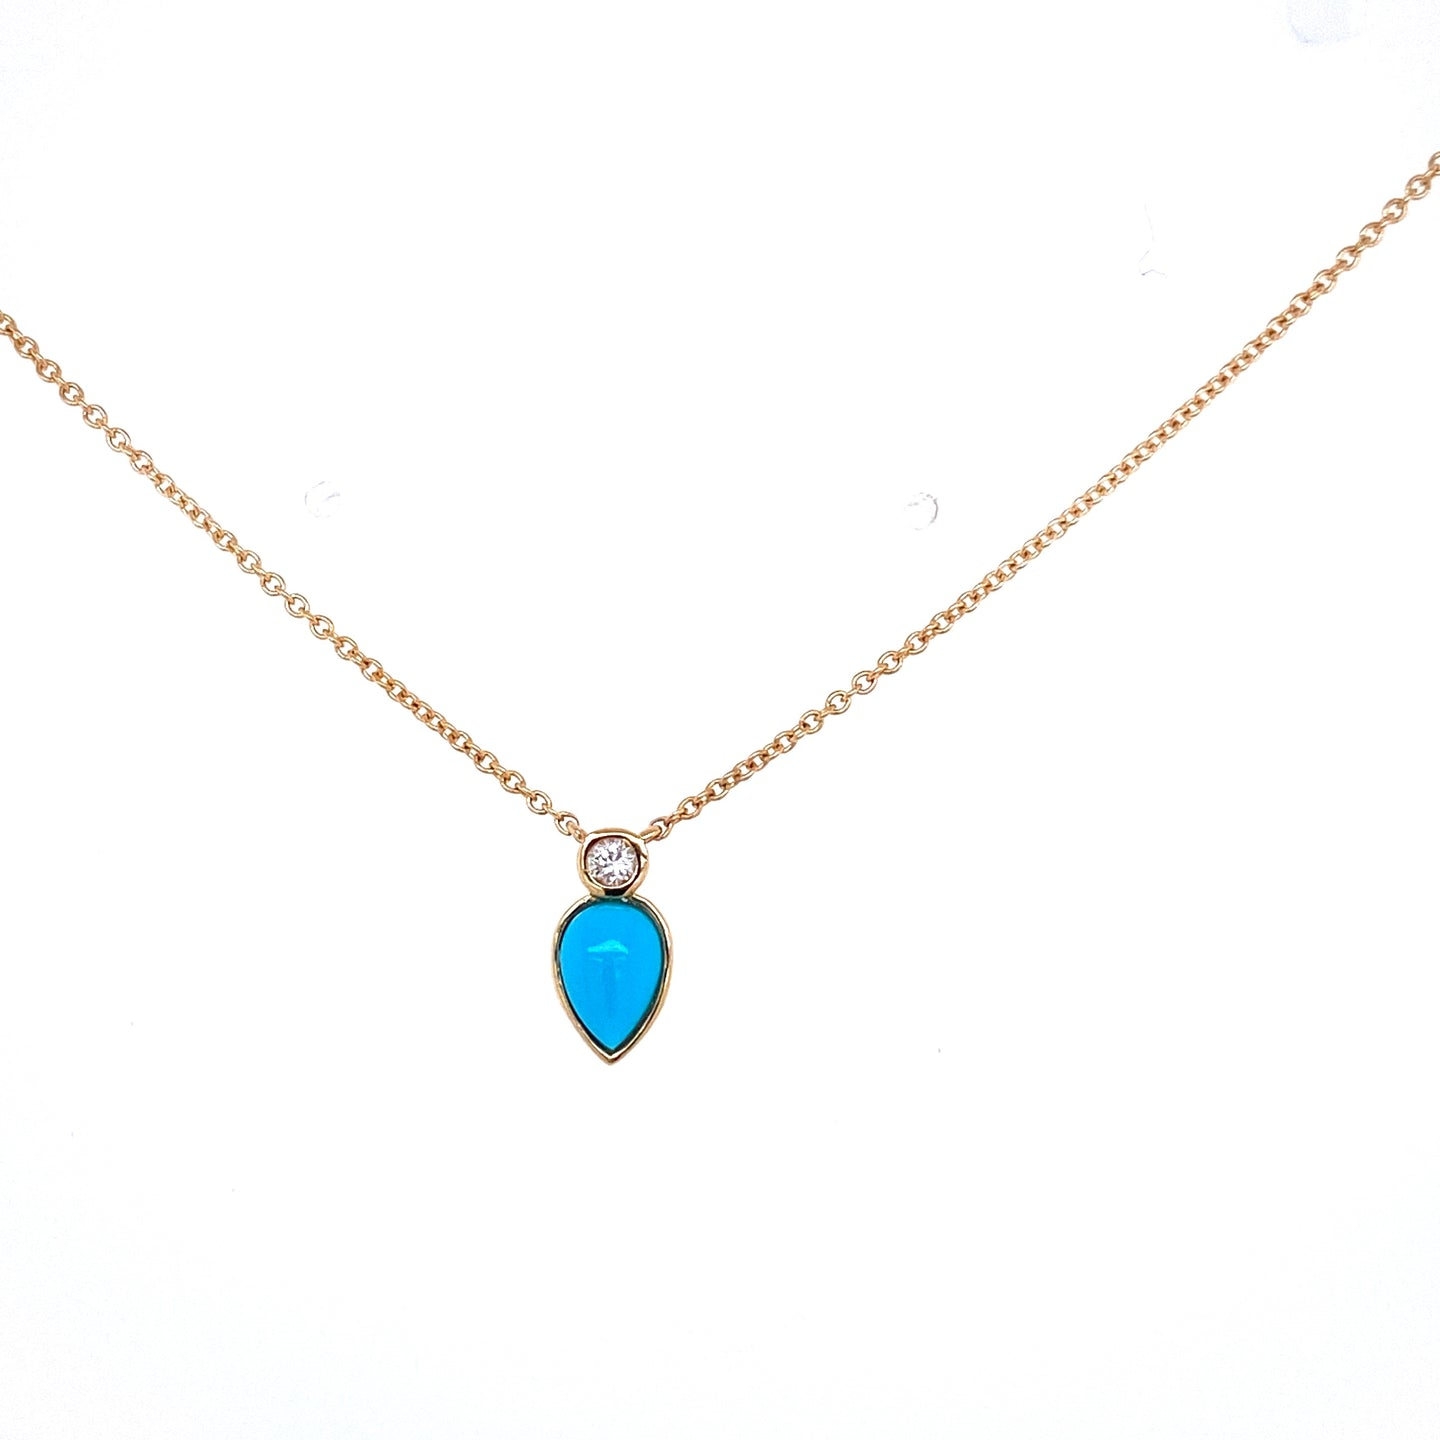 Pear Shaped Turquoise & Diamond Necklace